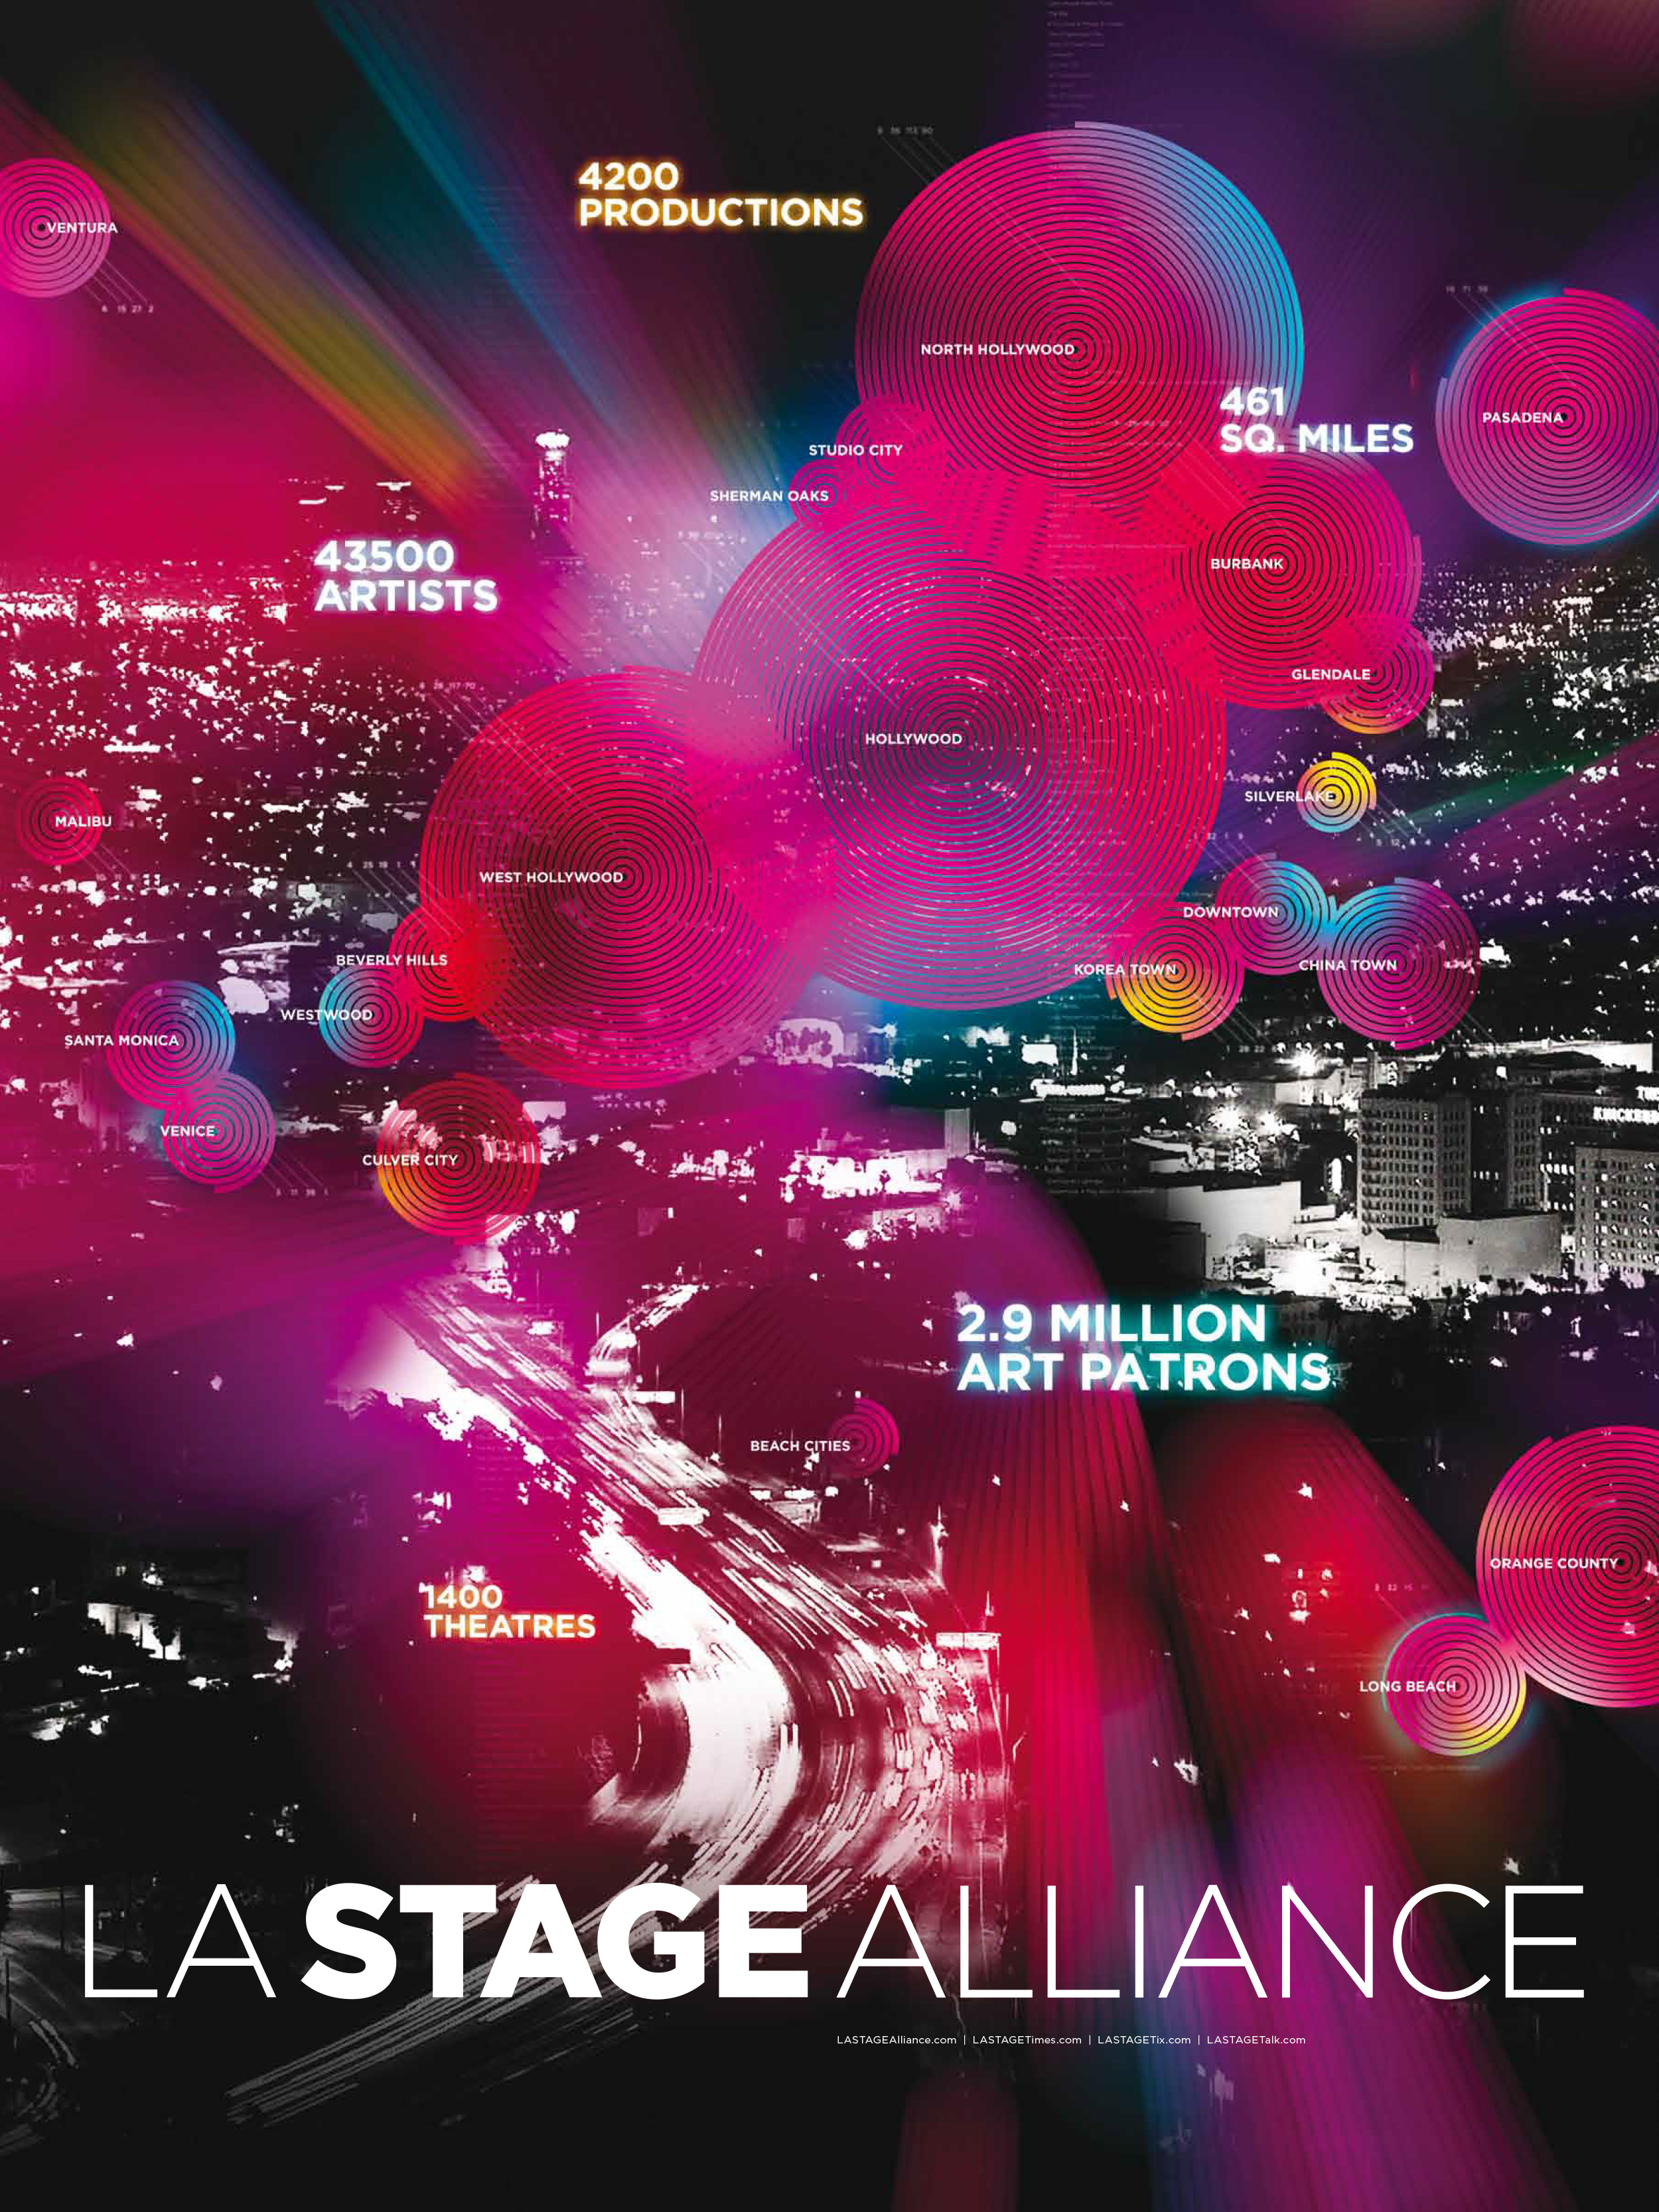 distinc_LA-Stage_Alliance-poster-front.jpg